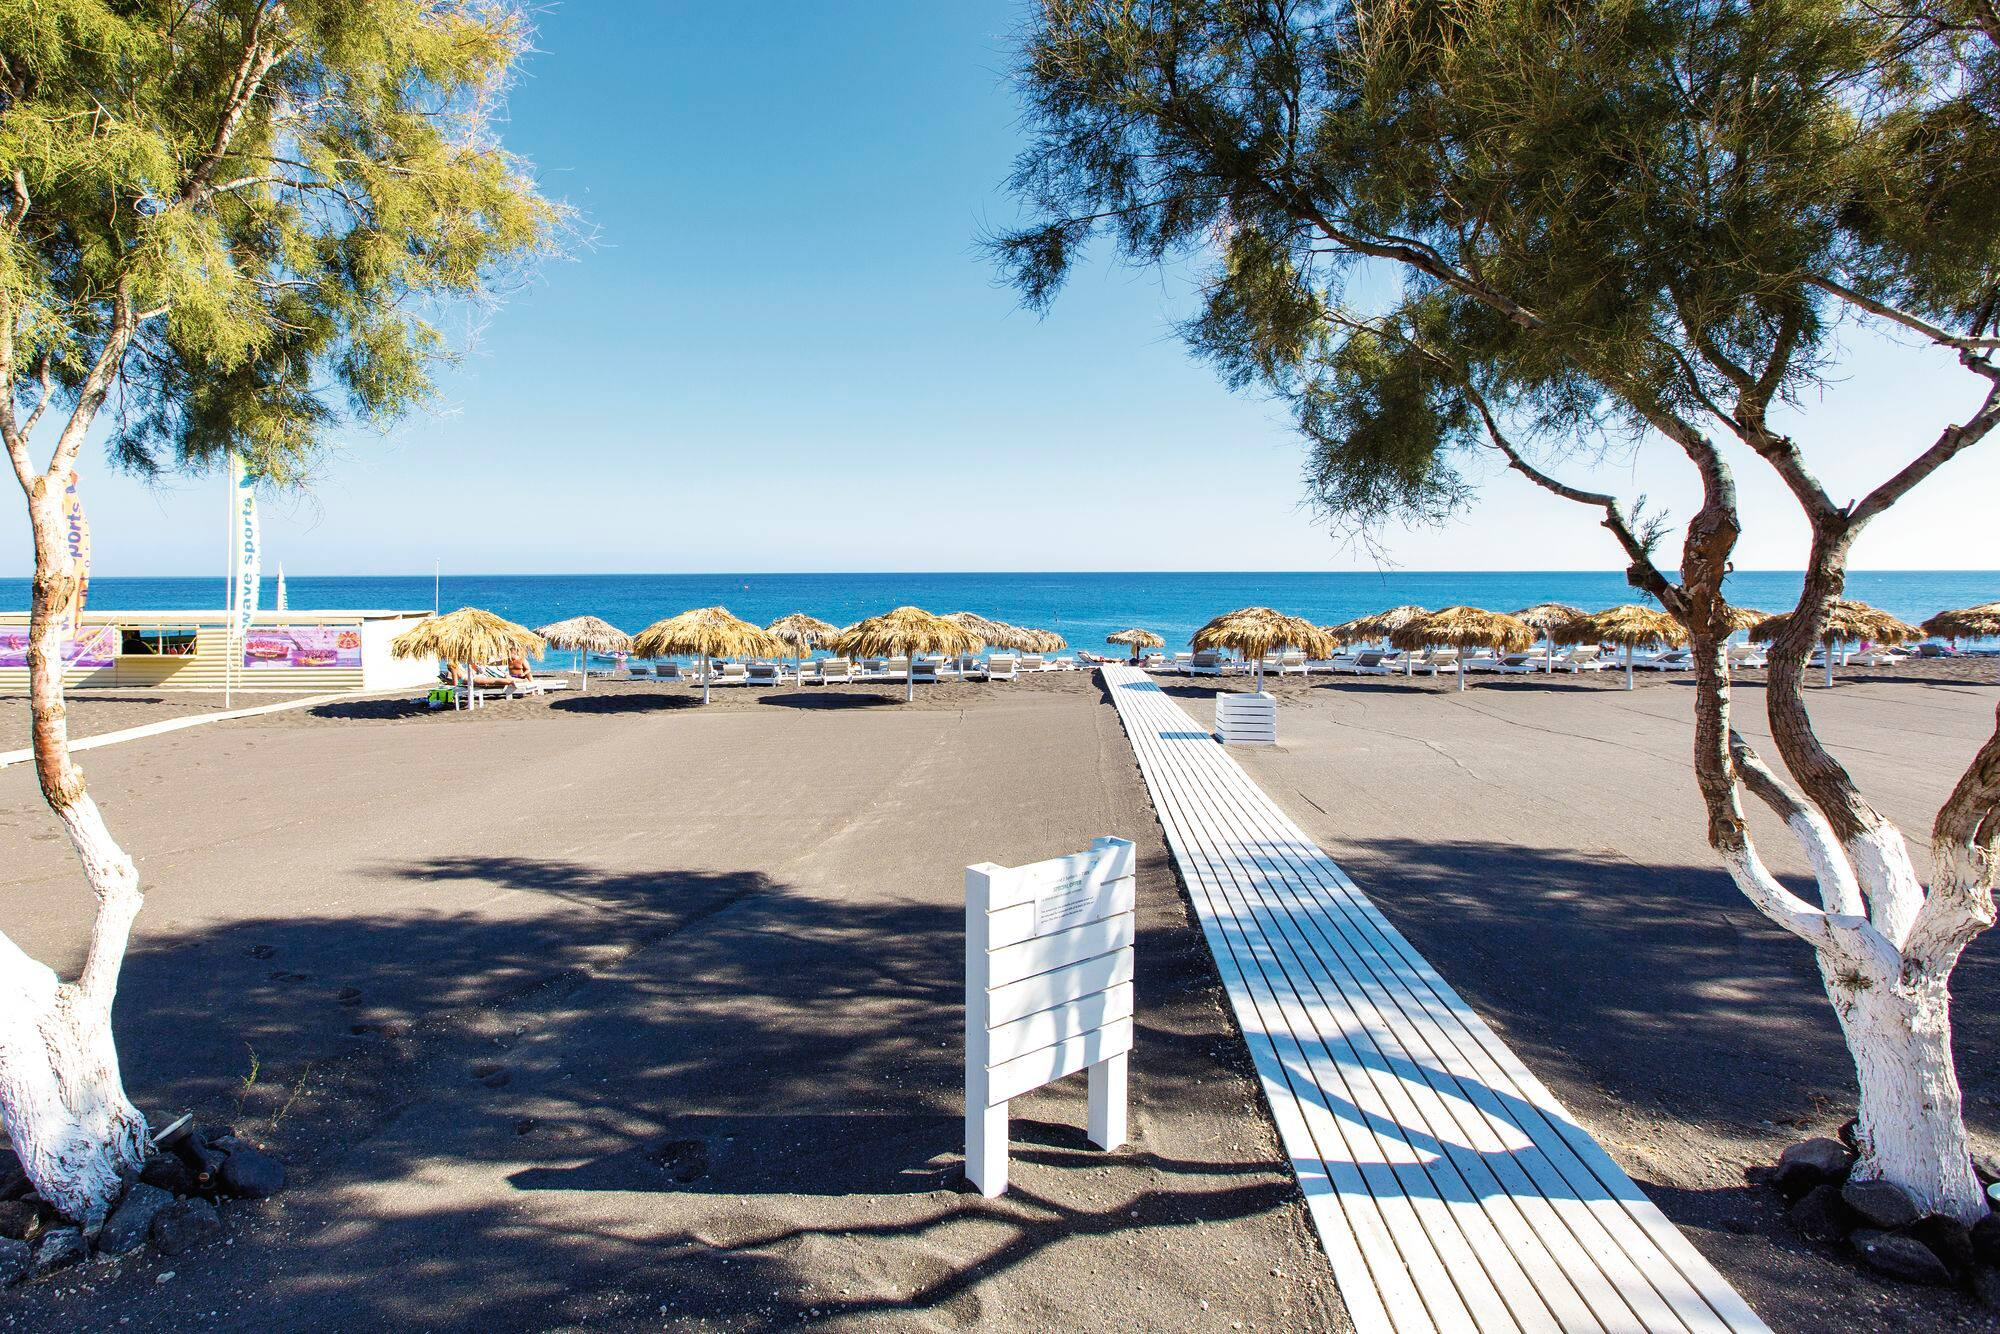 Bagno Wave Punta Marina When Is The Best Time To Visit Perissa Tui